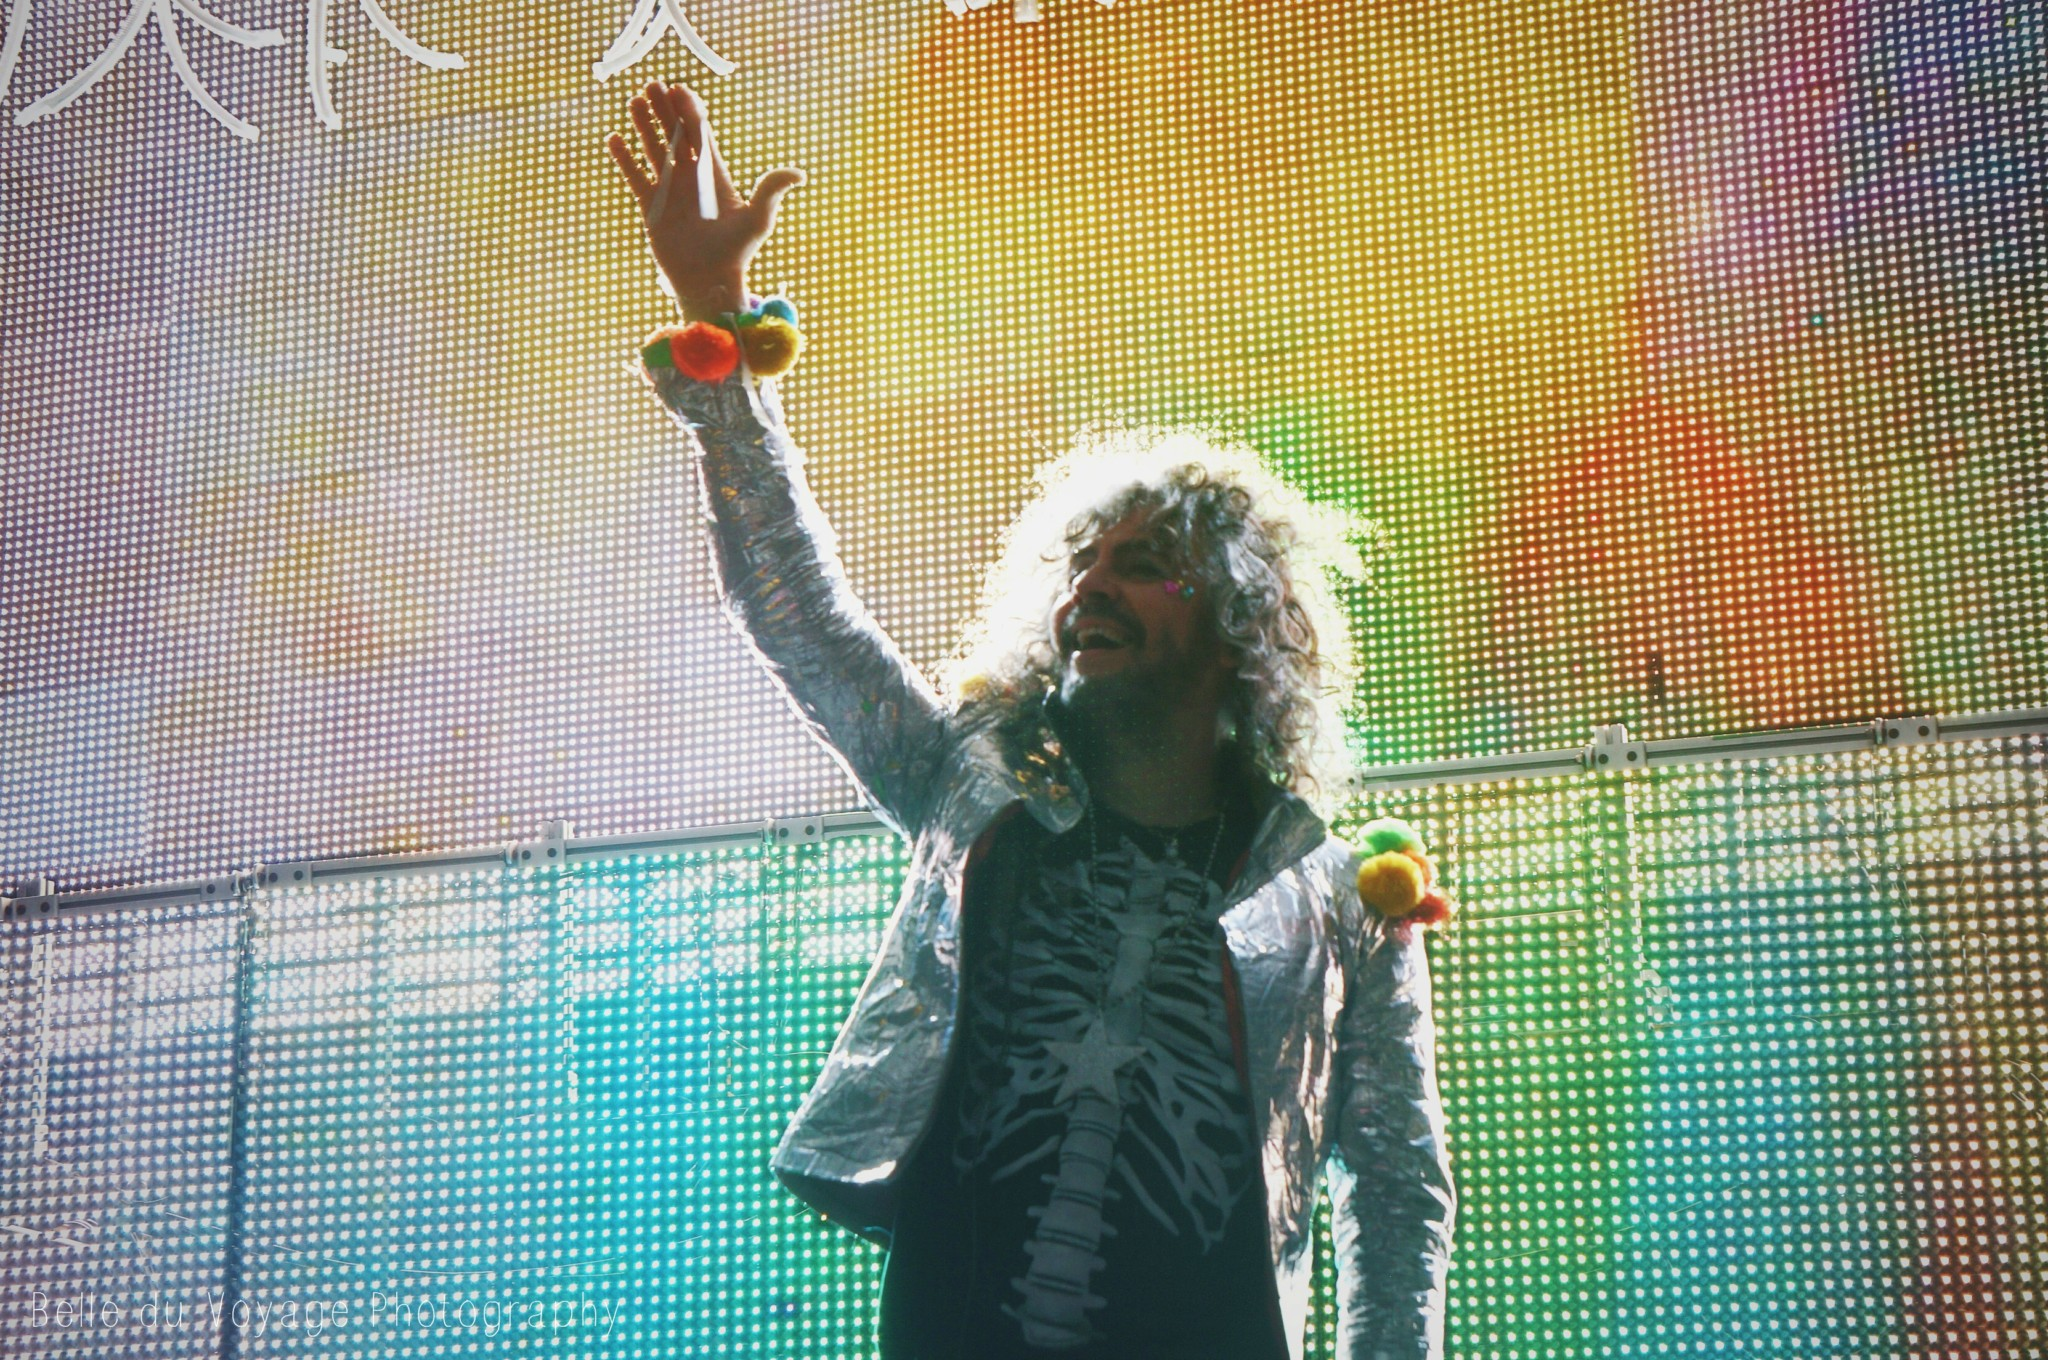 Concert Review: Memorial Weekend Blowout w/ The Flaming Lips, Lucero, Title Fight, and more